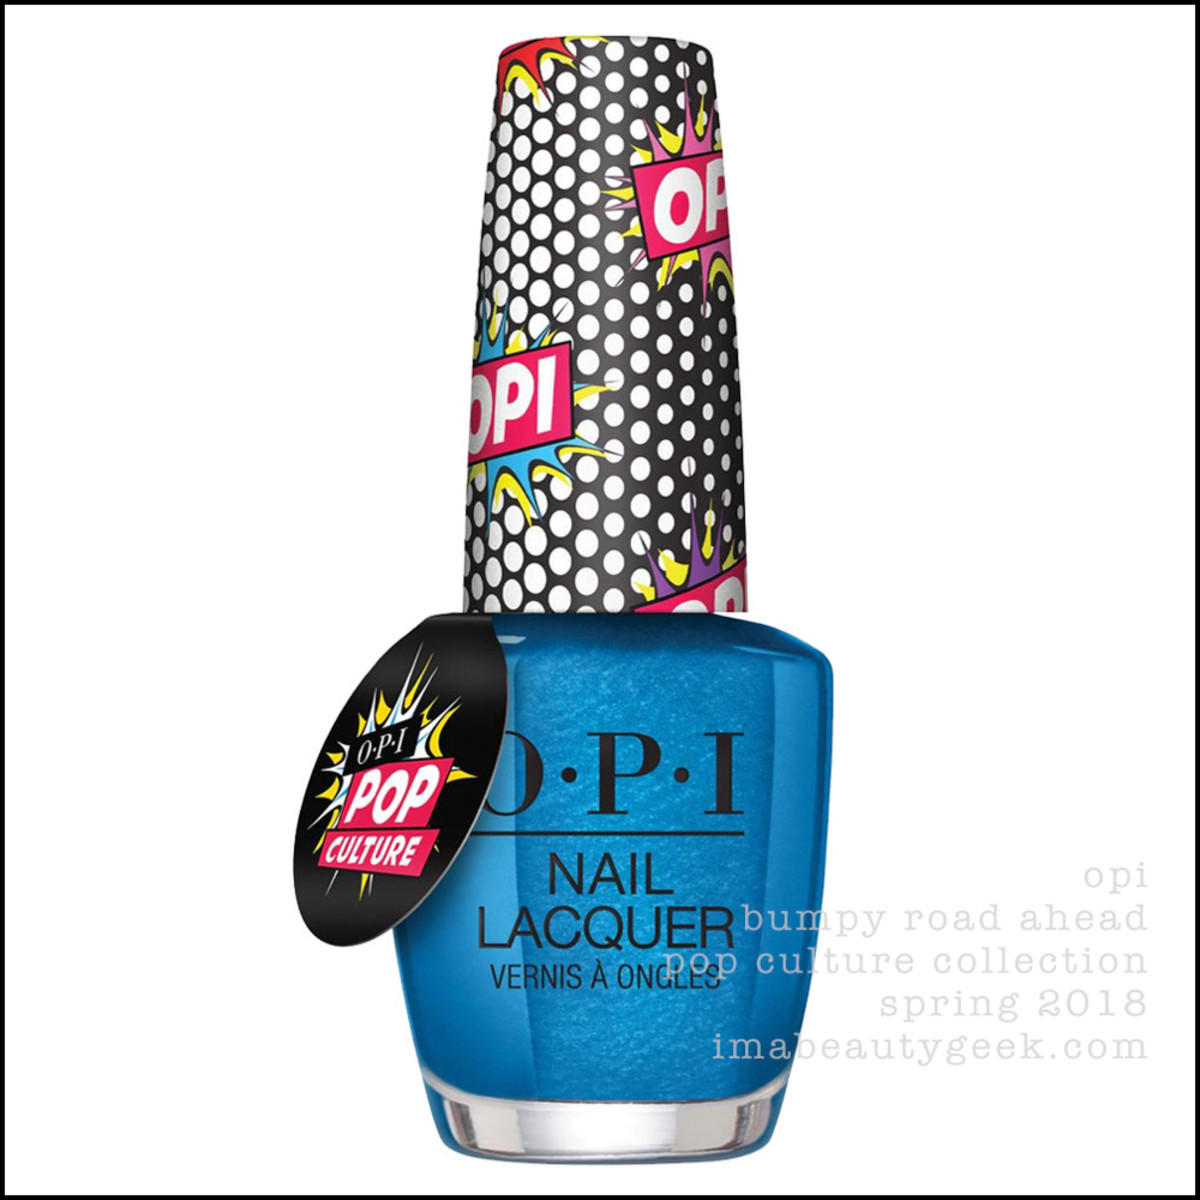 OPI Pop Culture Collection 2018 - OPI Bumpy Road Ahead